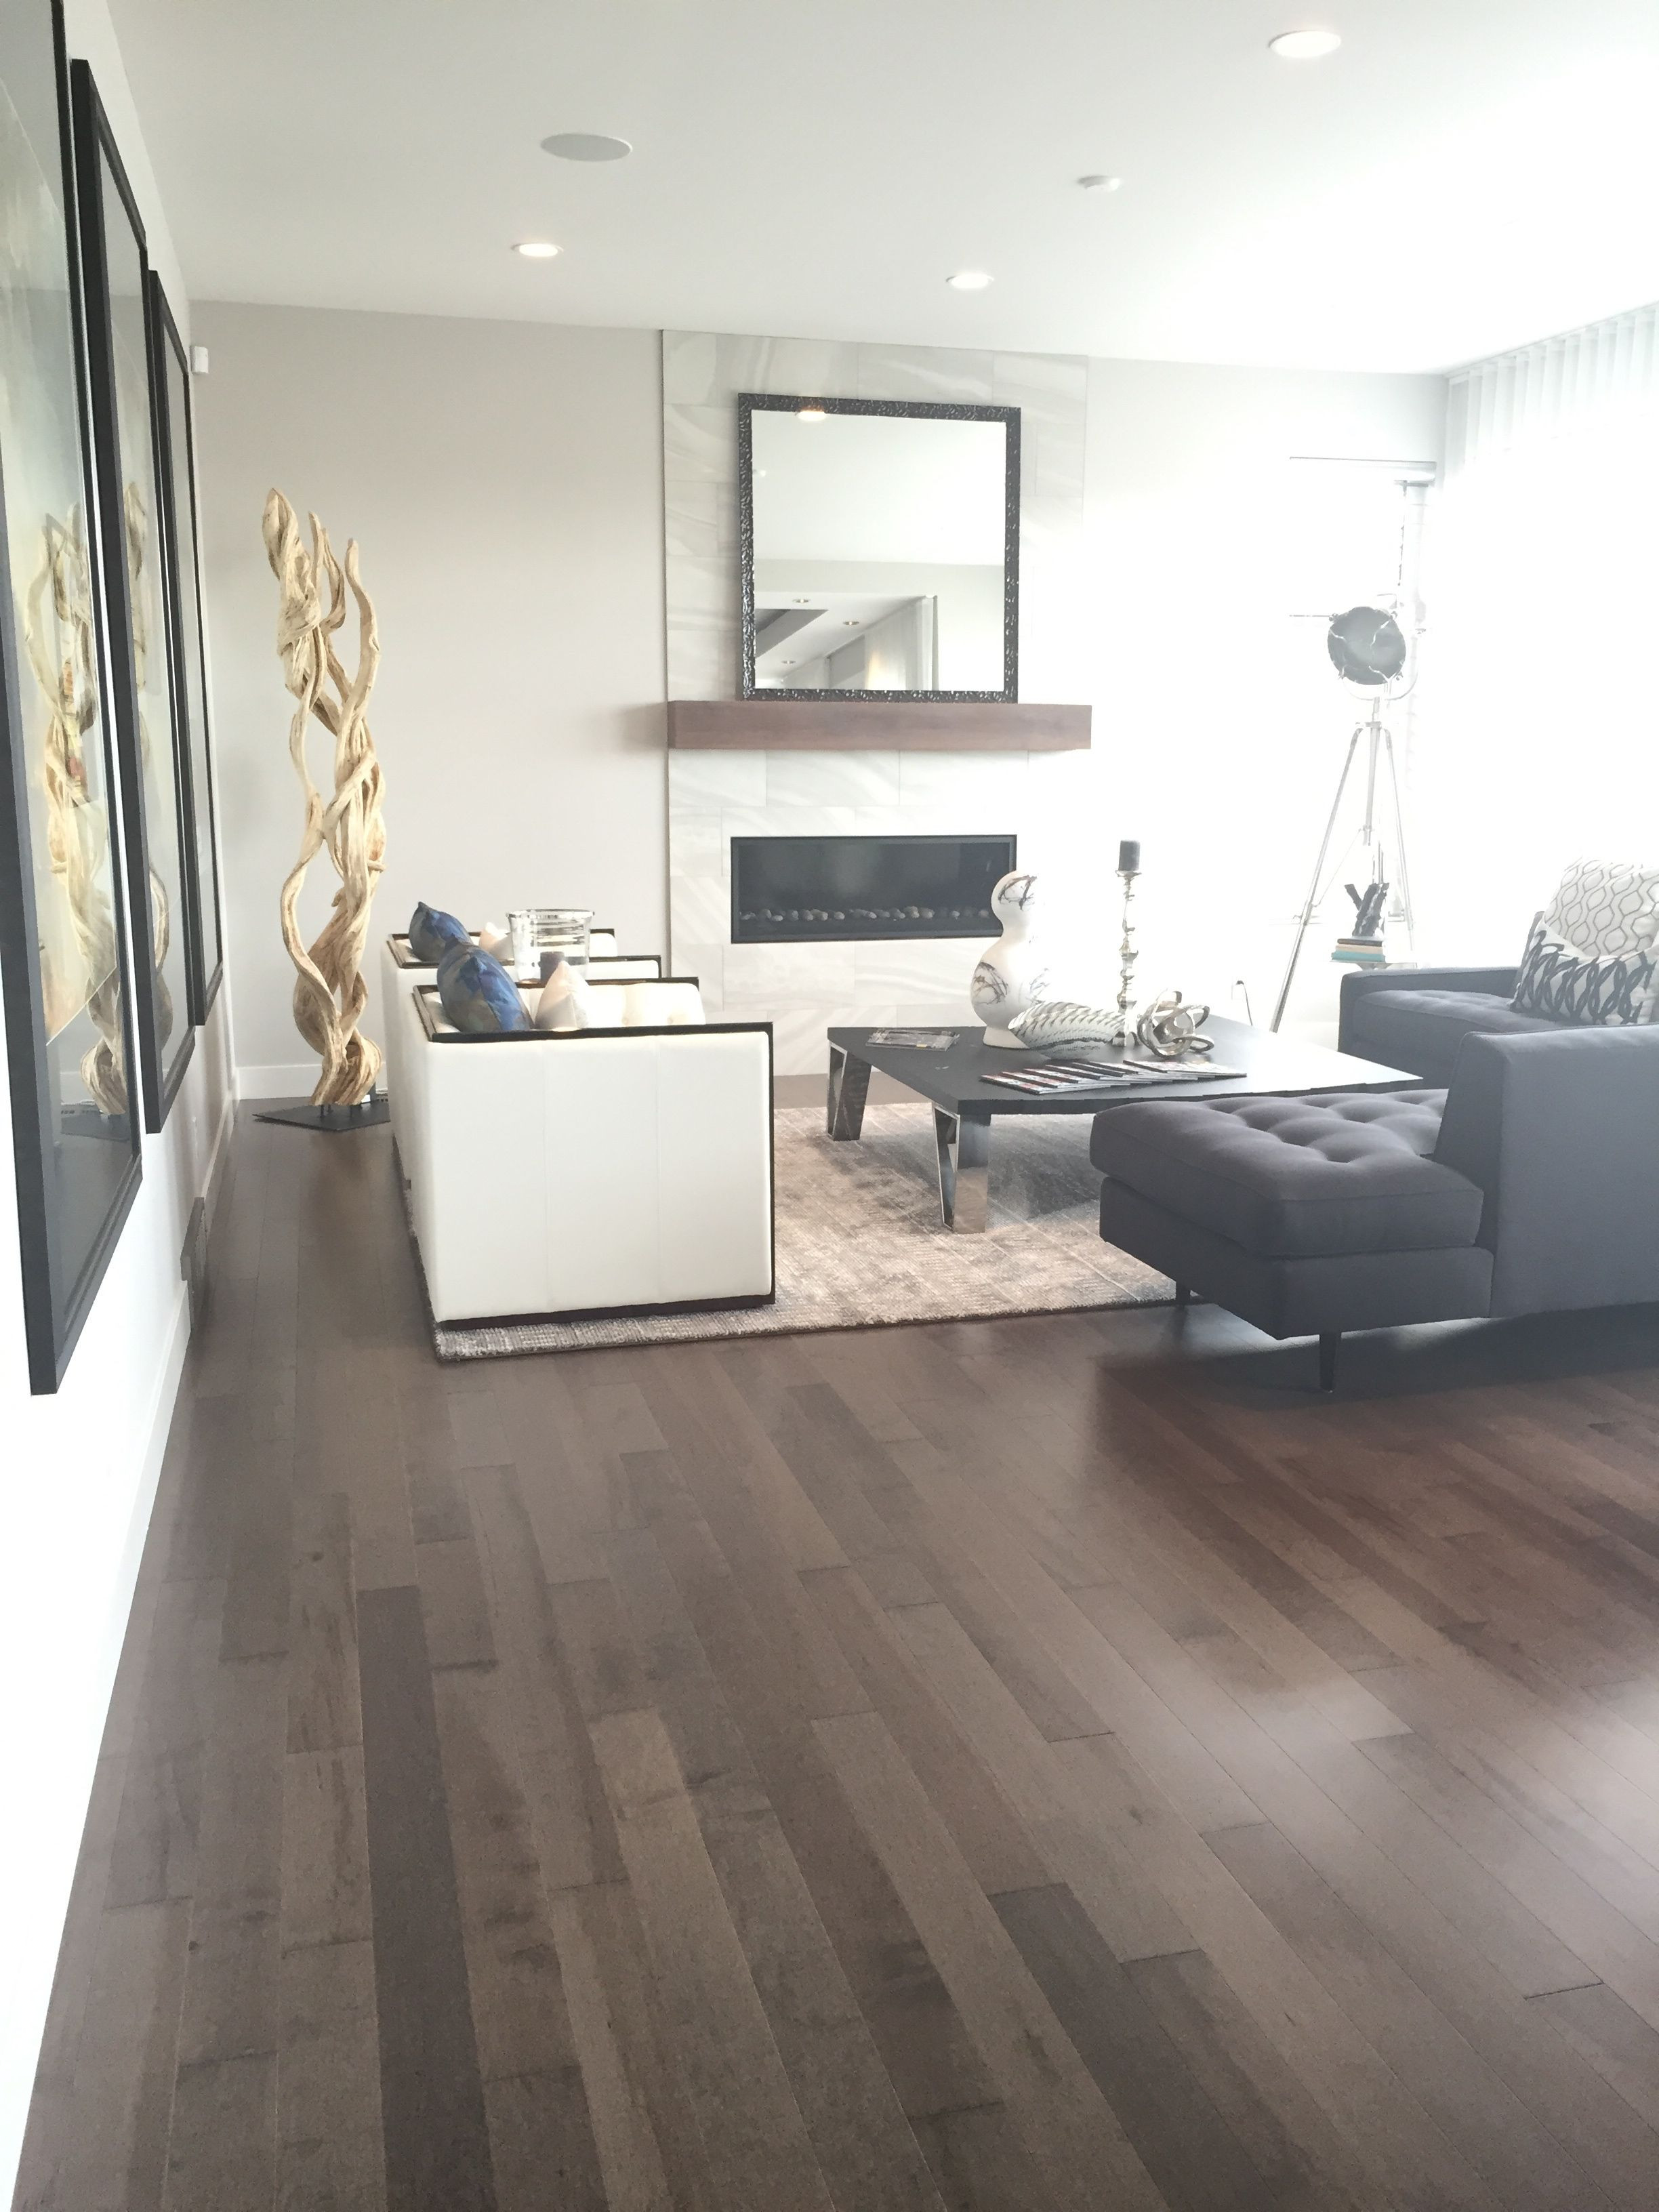 hardwood floor refinishing rhode island of smoky grey essential hard maple tradition lauzon hardwood intended for beautiful living room from the cantata showhome featuring lauzons smokey grey hard maple hardwood flooring from the essential collection